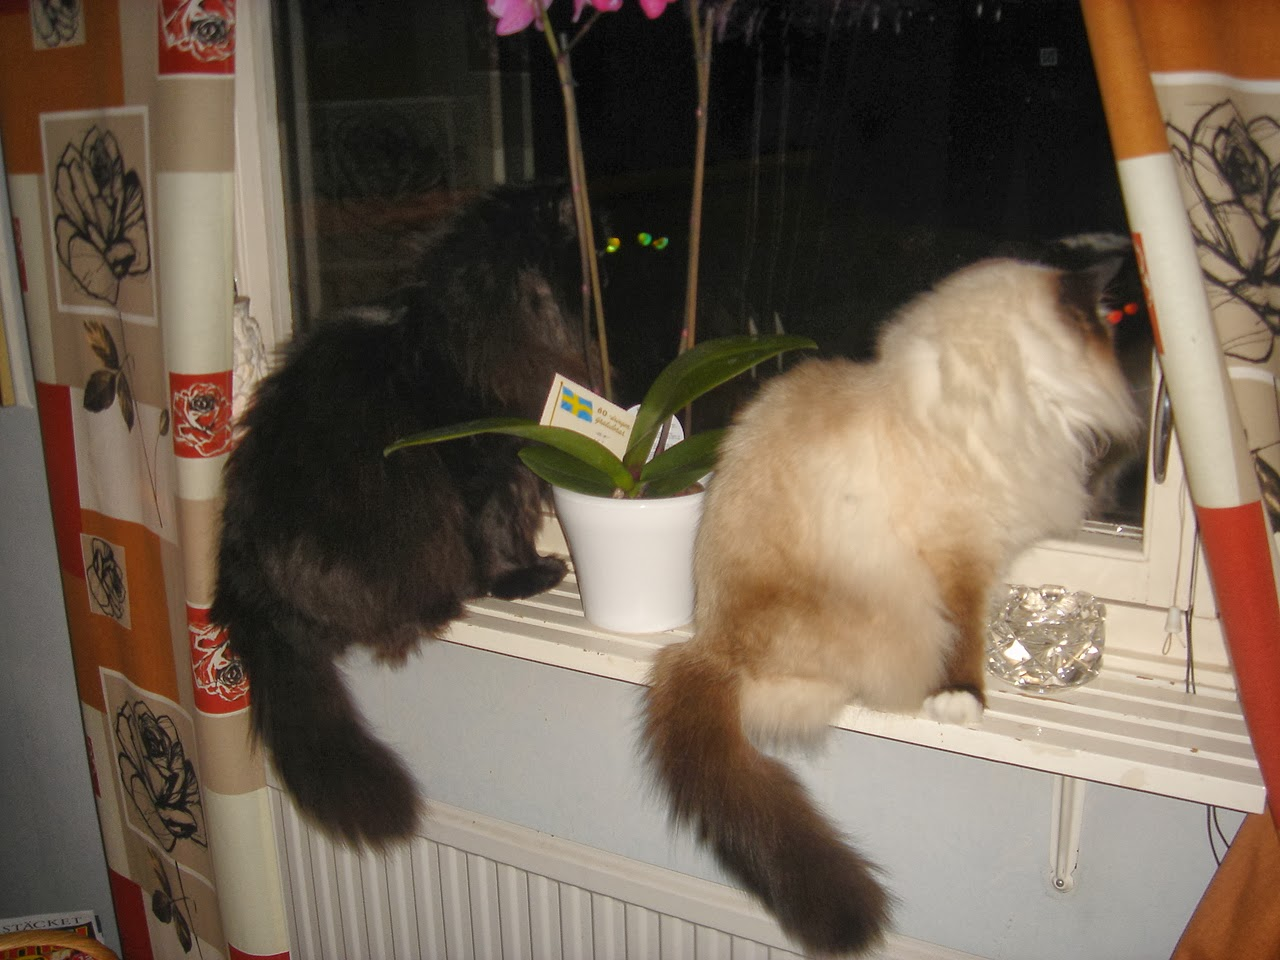 Cute picture of Morris & Chasmine looking out in the darkness